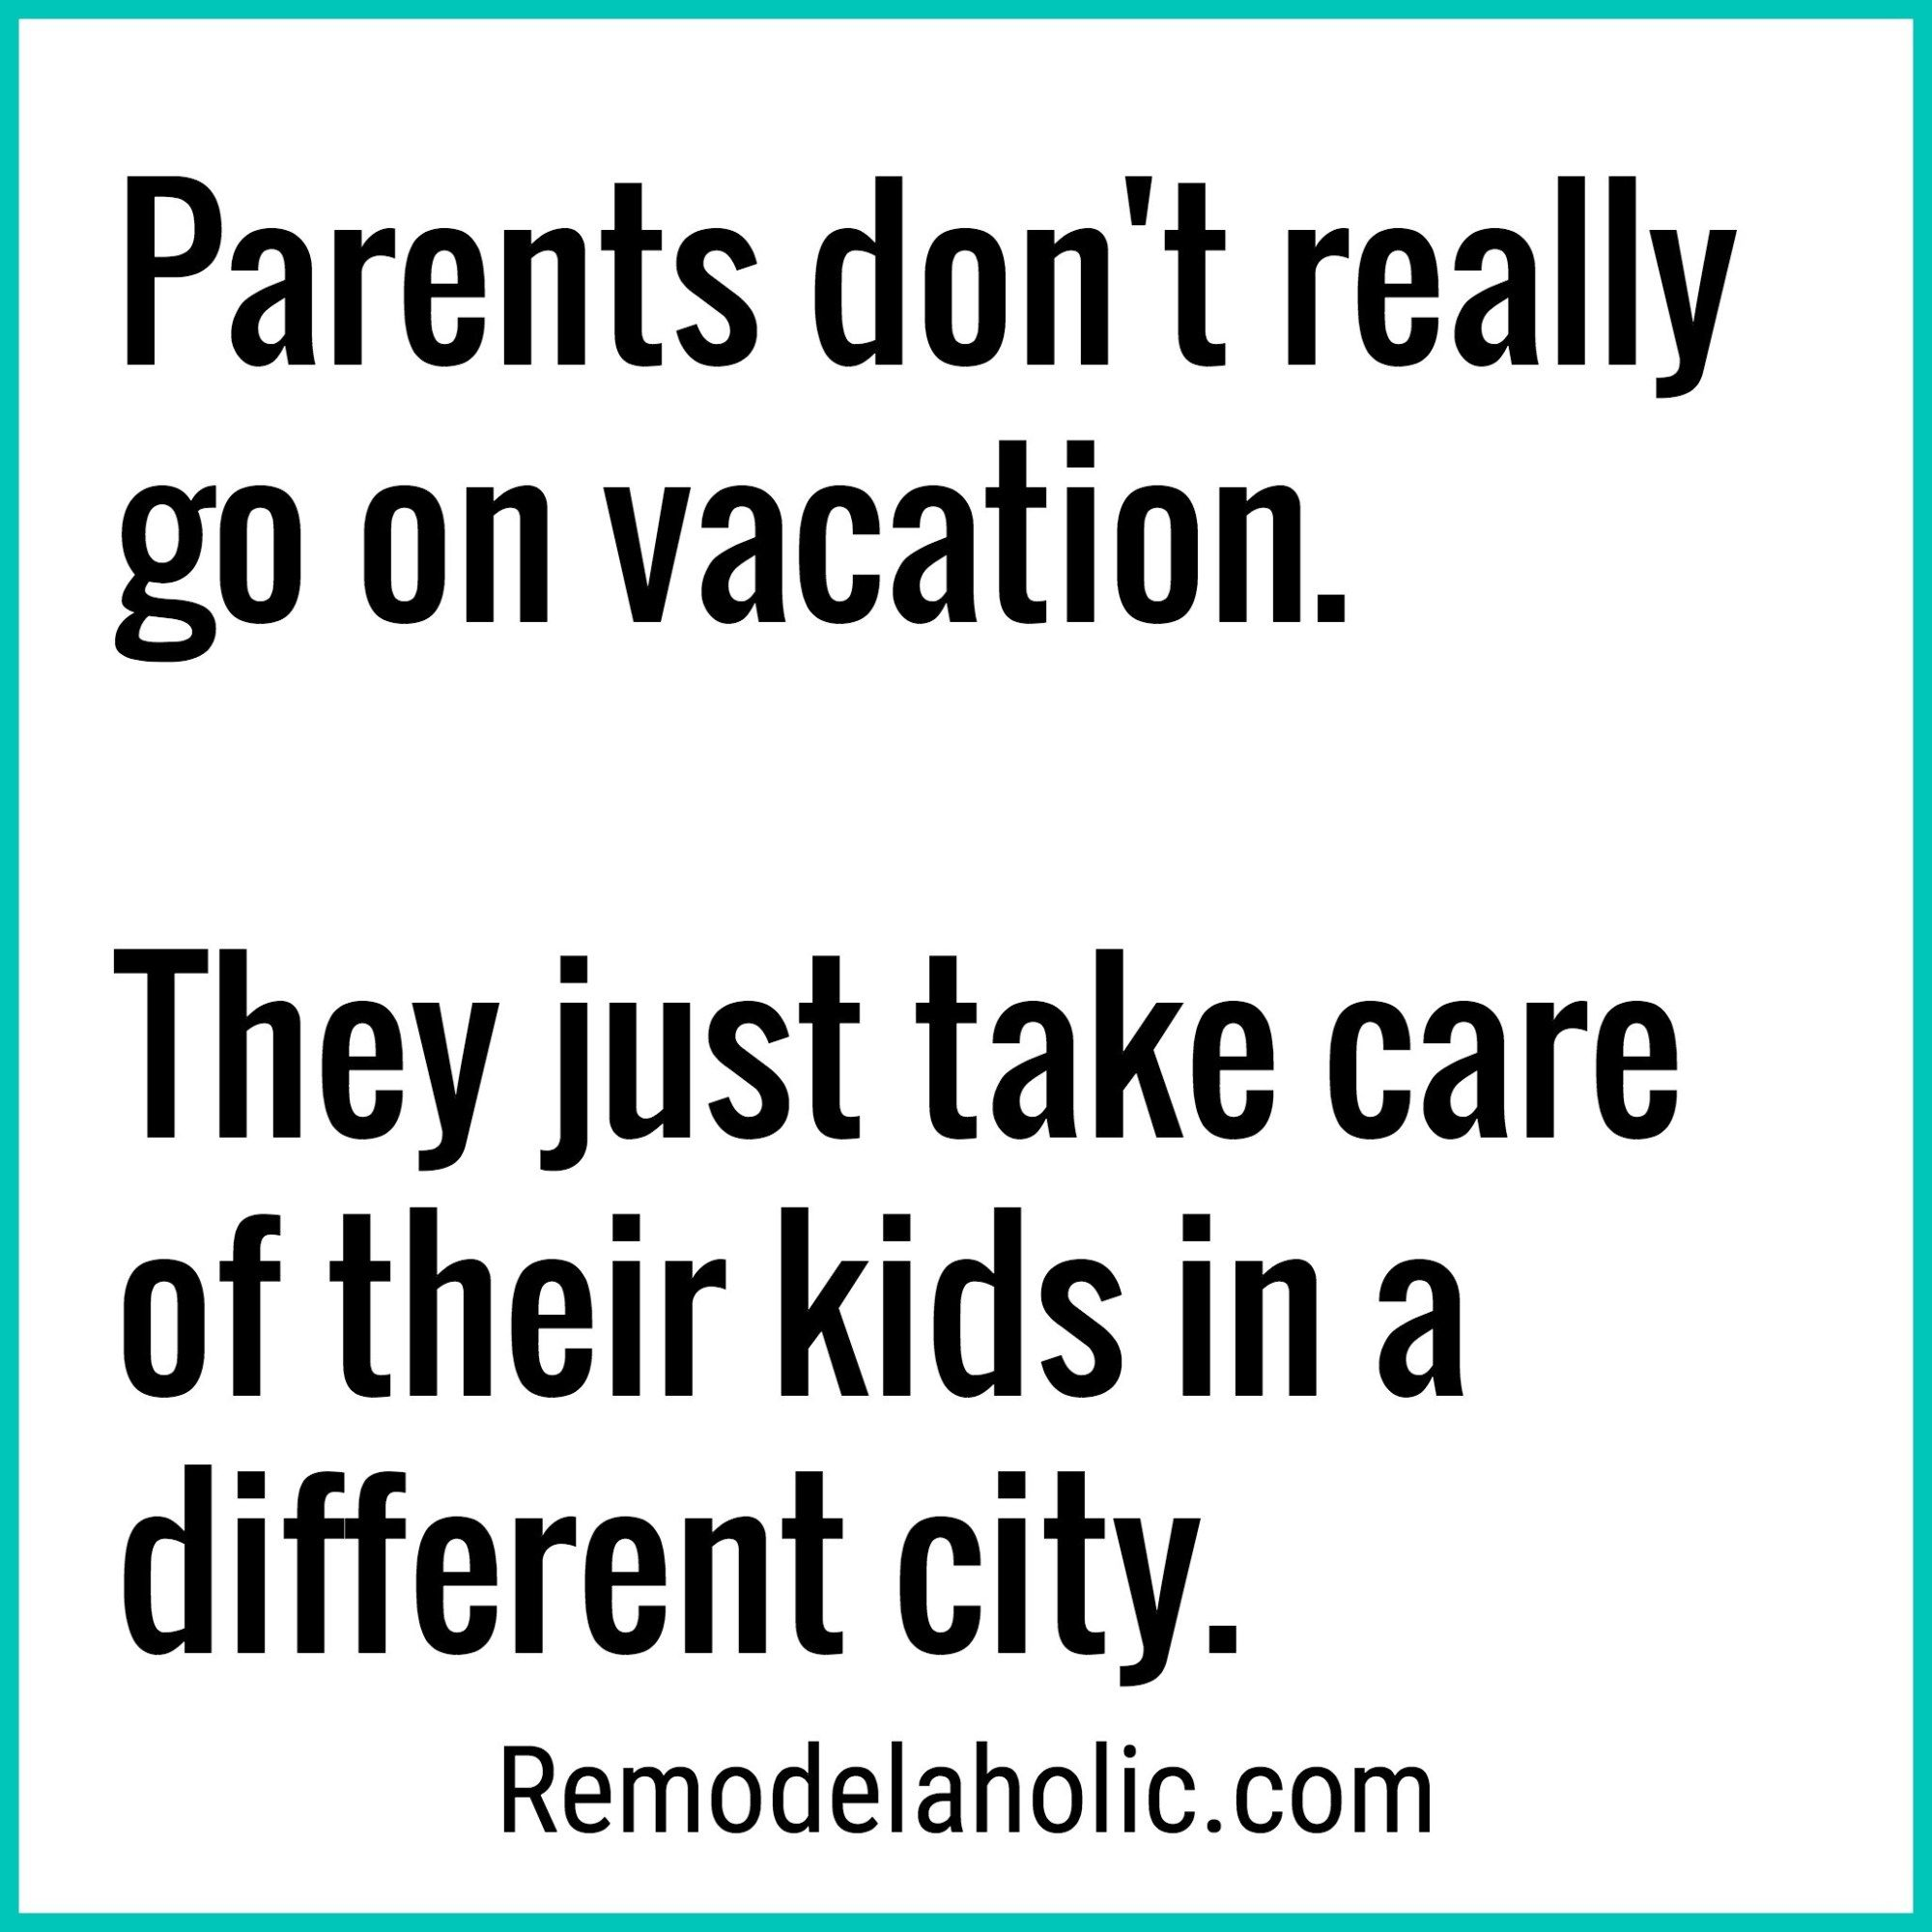 Parents Don T Really Go On Vacation Meme At Remodelaholic Com Parenting Funnymemes Quotes Funny Mom Quotes Funny Kid Memes Things Kids Say